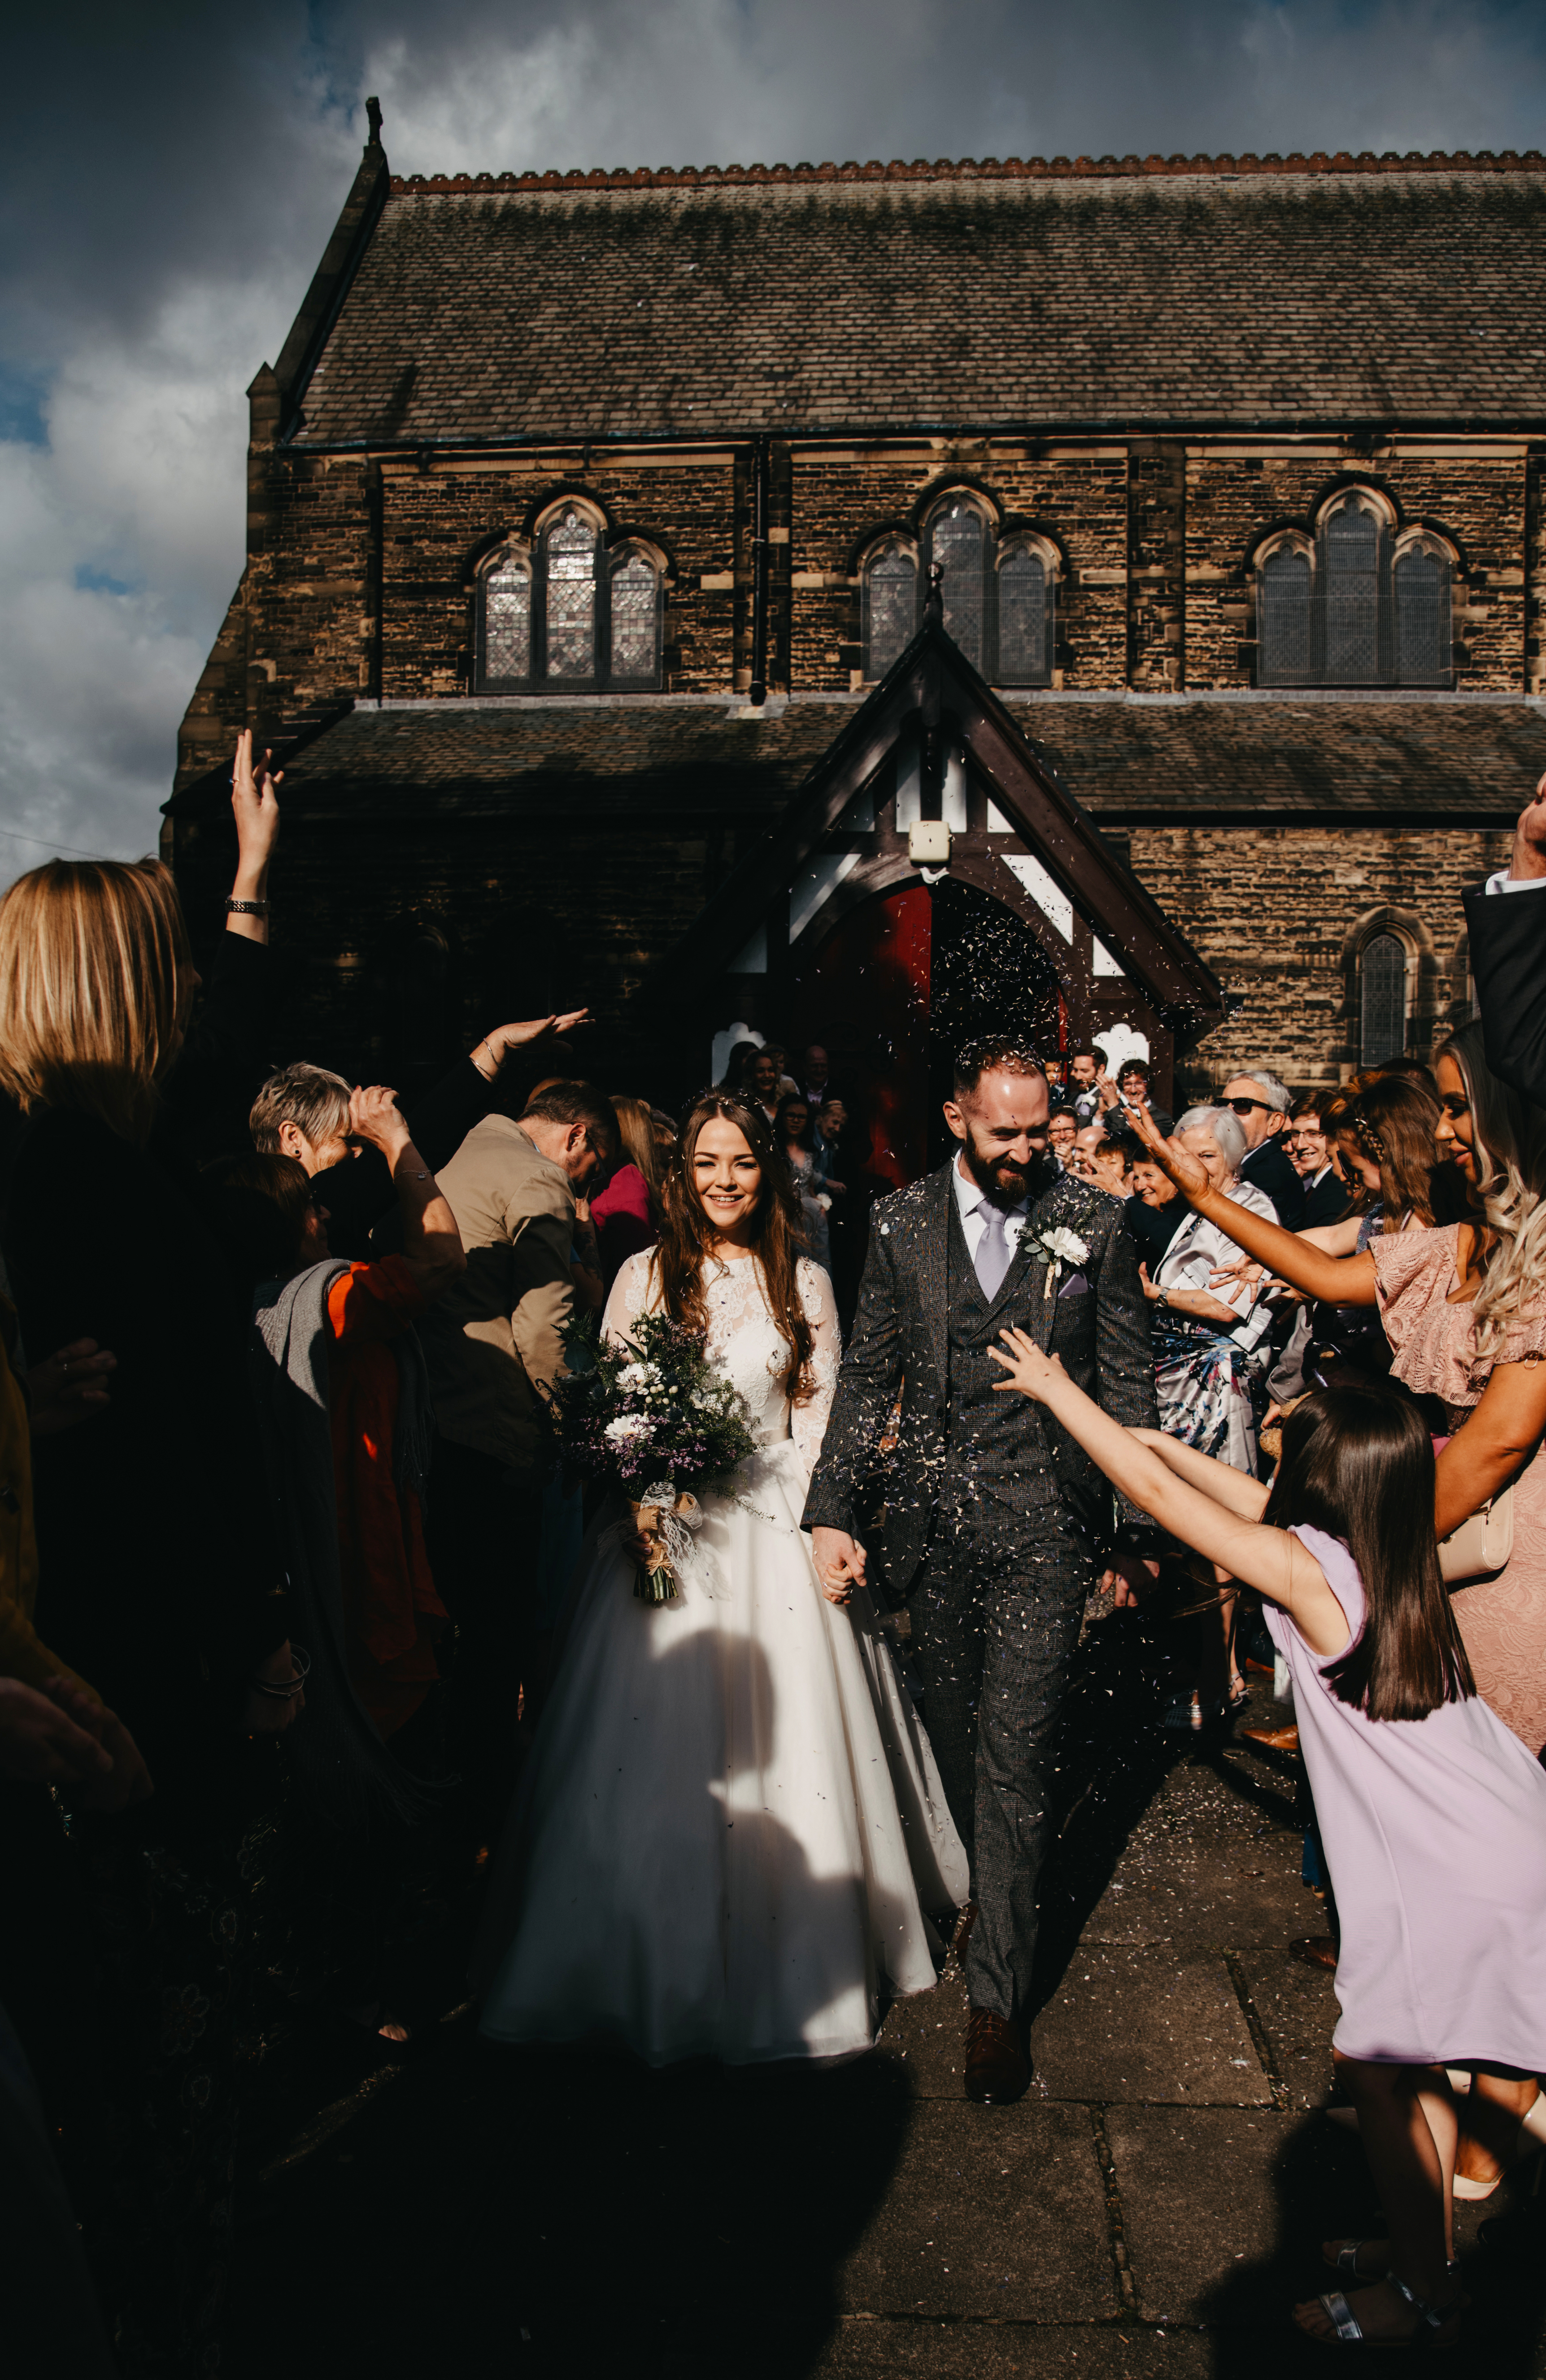 A bride and grooms walks as guests throw confetti over them